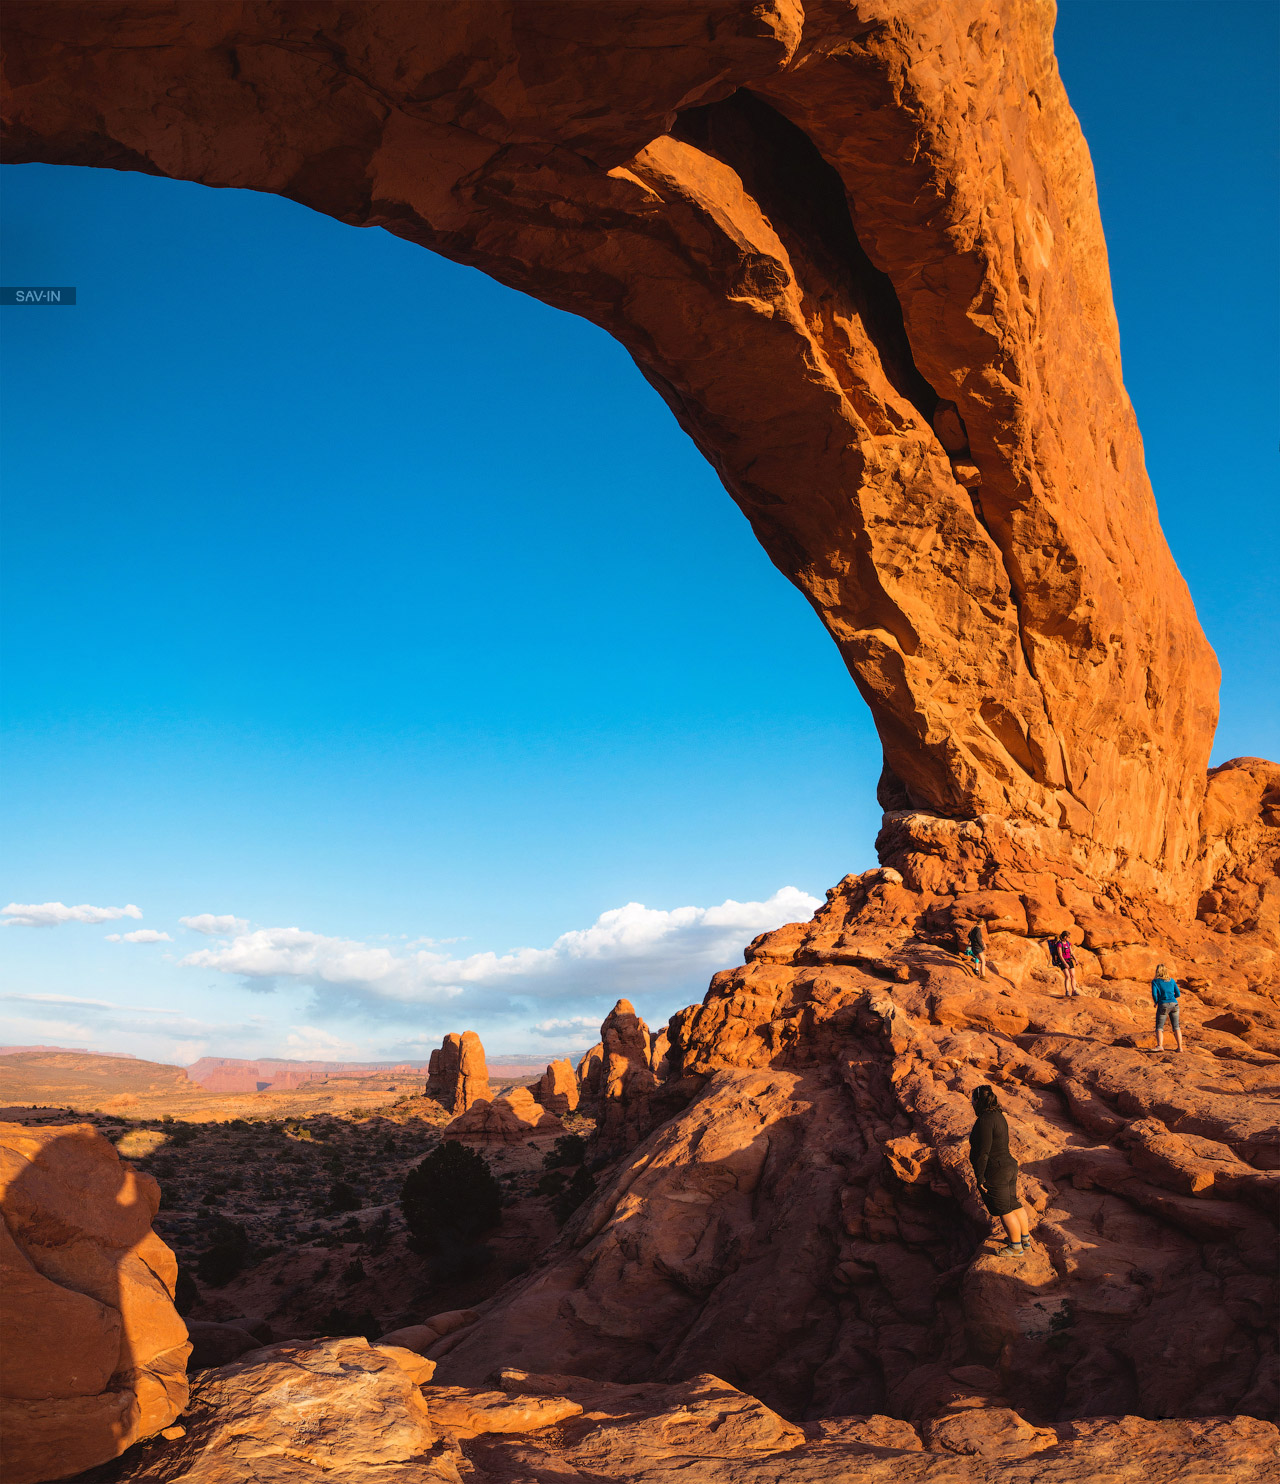 Arches national Park. From dusk till dawn 11